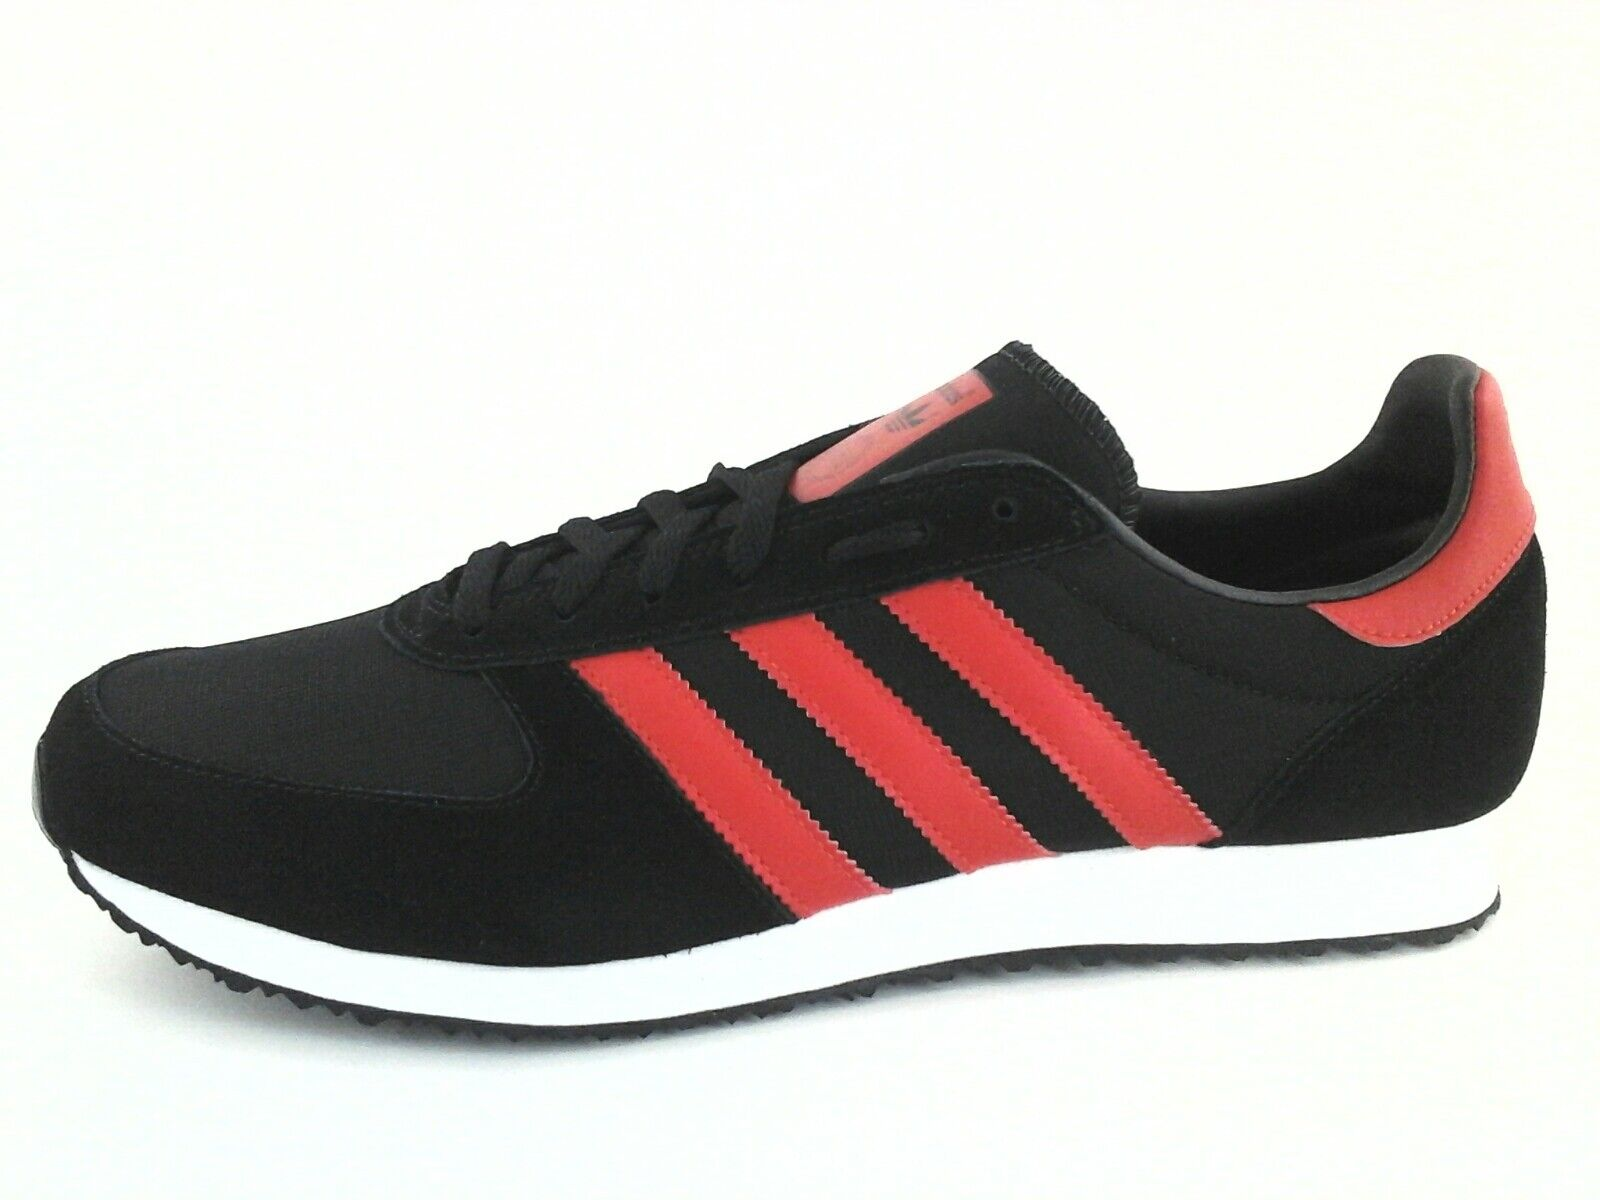 Adidas Originals S80037 Men's ZX RACER Retro shoes Black Red Red Red US 11  3 New d0c3b5